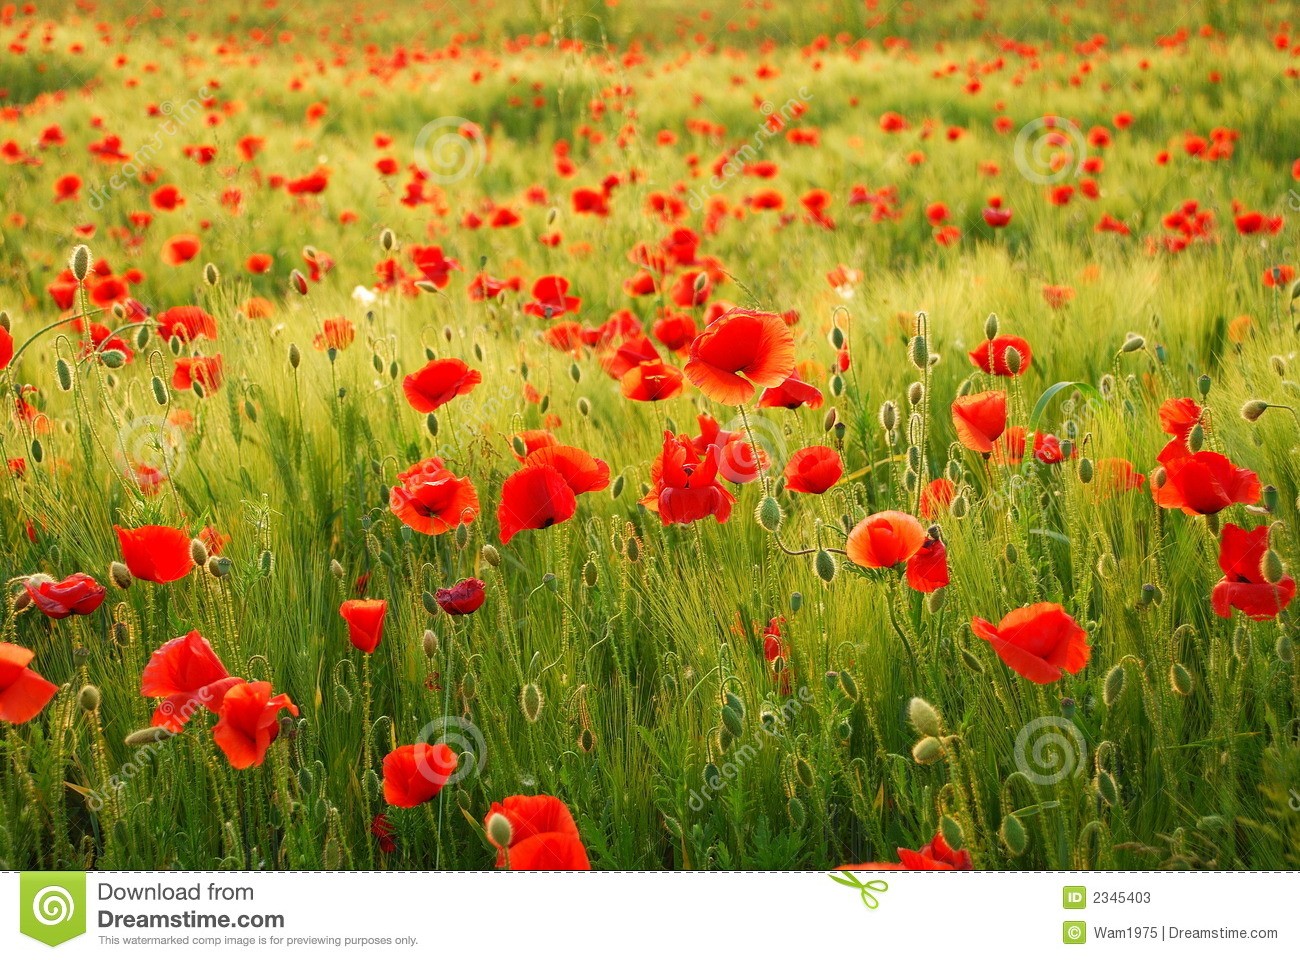 Poppies flowers stock image image of conservation lowland 2345403 poppies flowers mightylinksfo